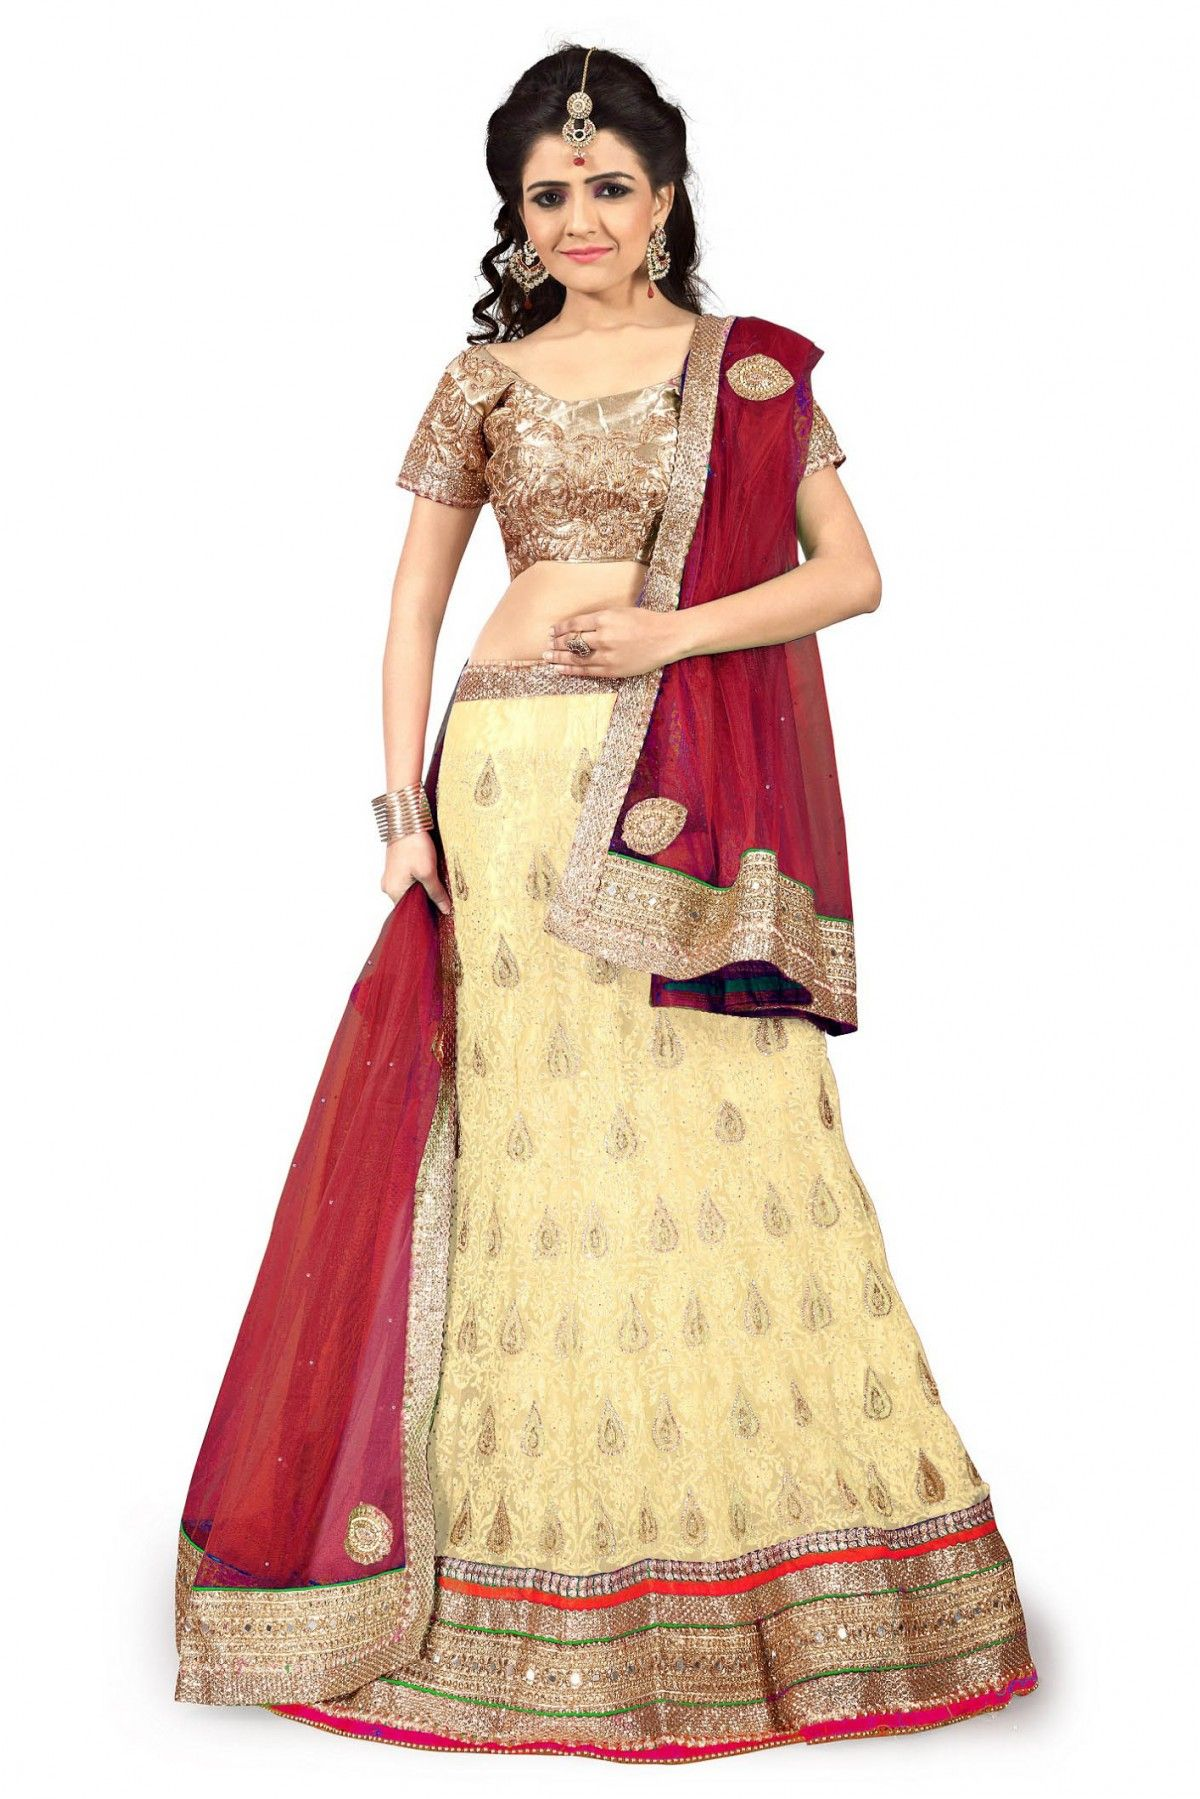 e59de85cbe Net Party Wear Lehenga Choli In Beige Colour.It comes with matching Dupatta  and Choli.It is crafted with Resham Work,Zari Work,Stone Work,Mirror Work  ...